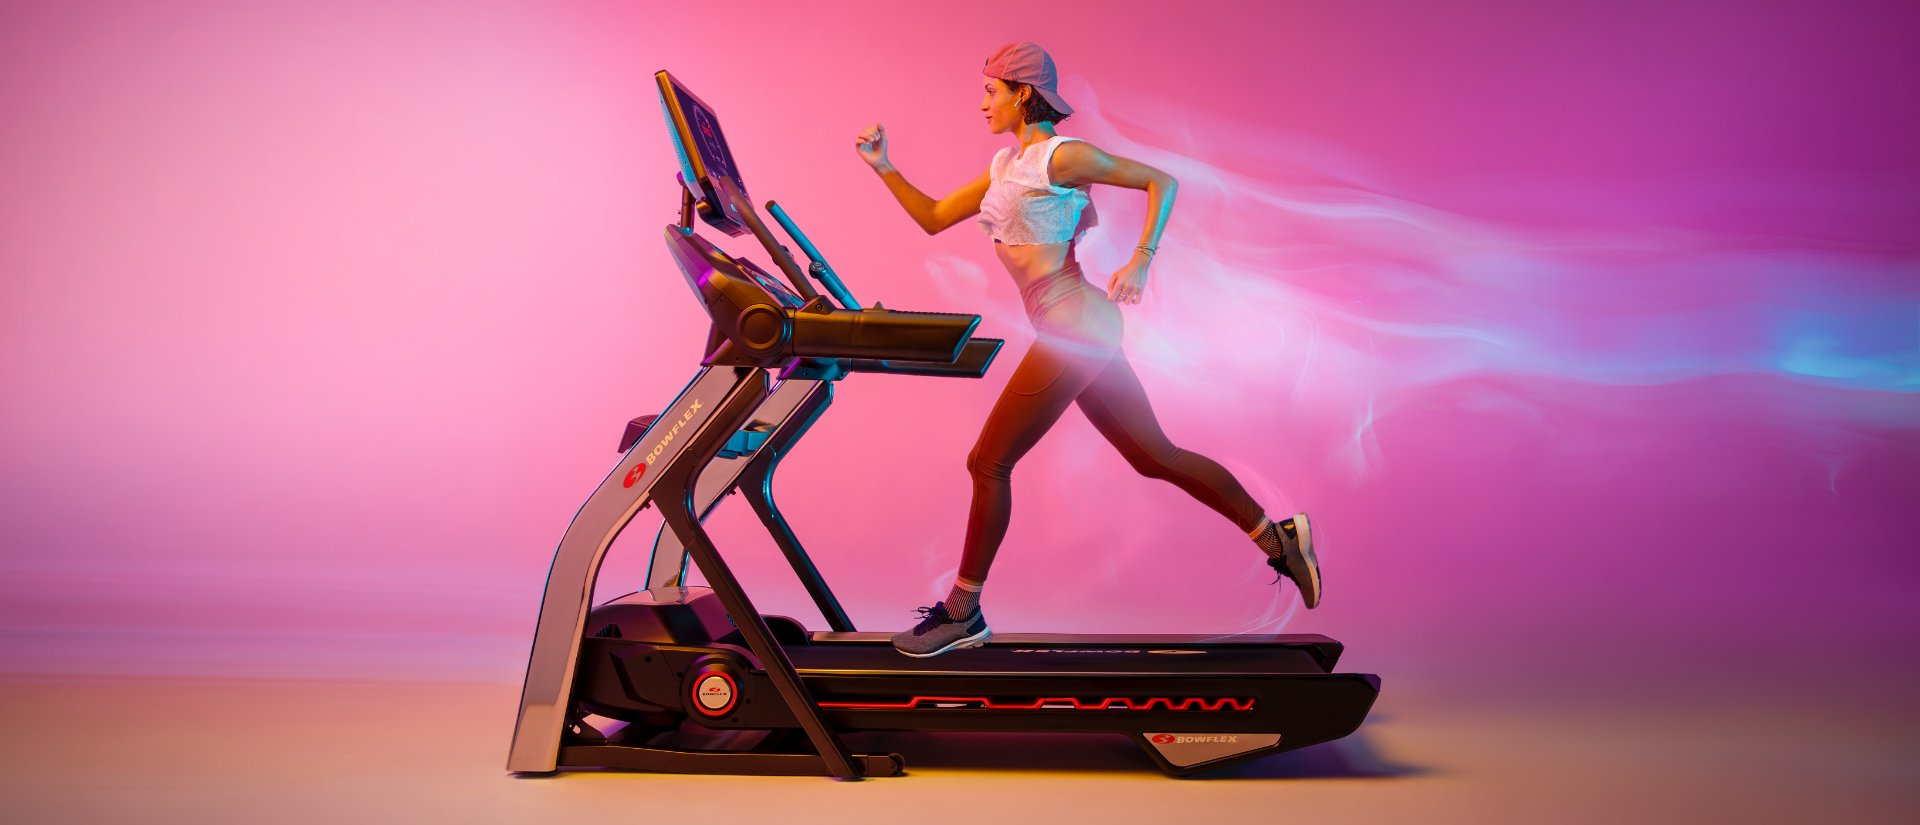 Woman running on Treadmill 22